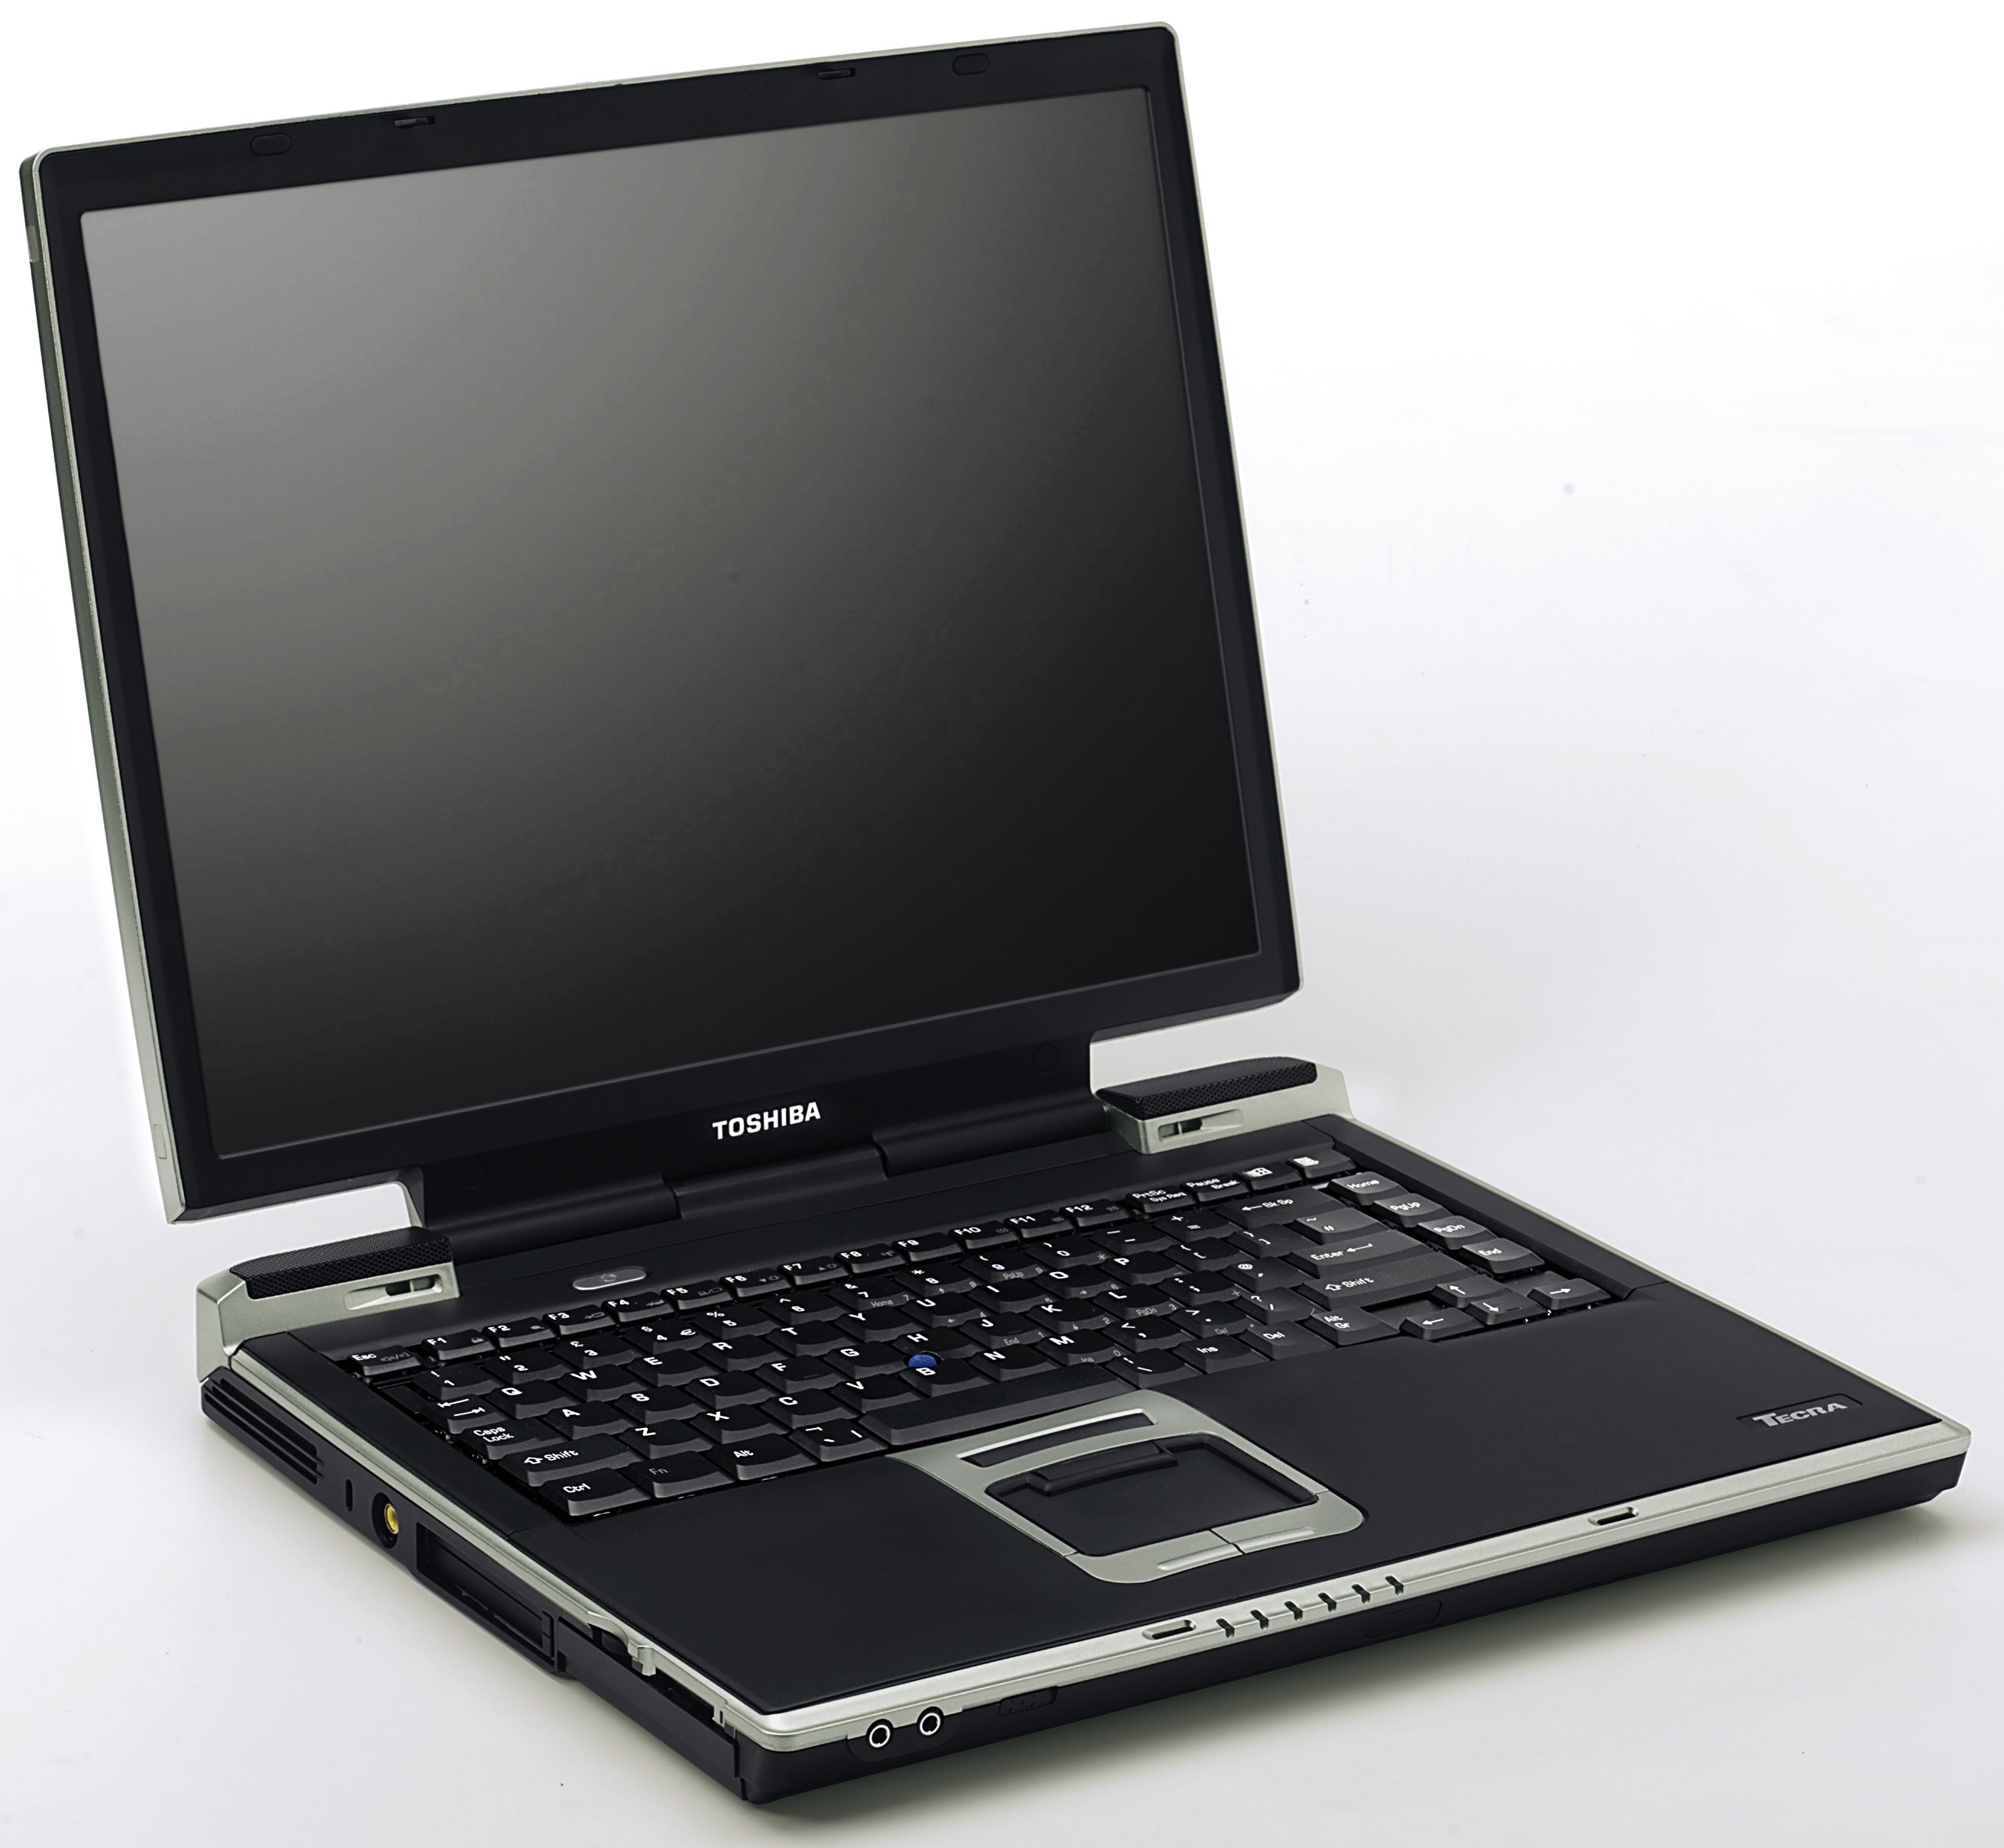 http://www.second-notebooks.de/images/toshiba_tecra_s1.jpg